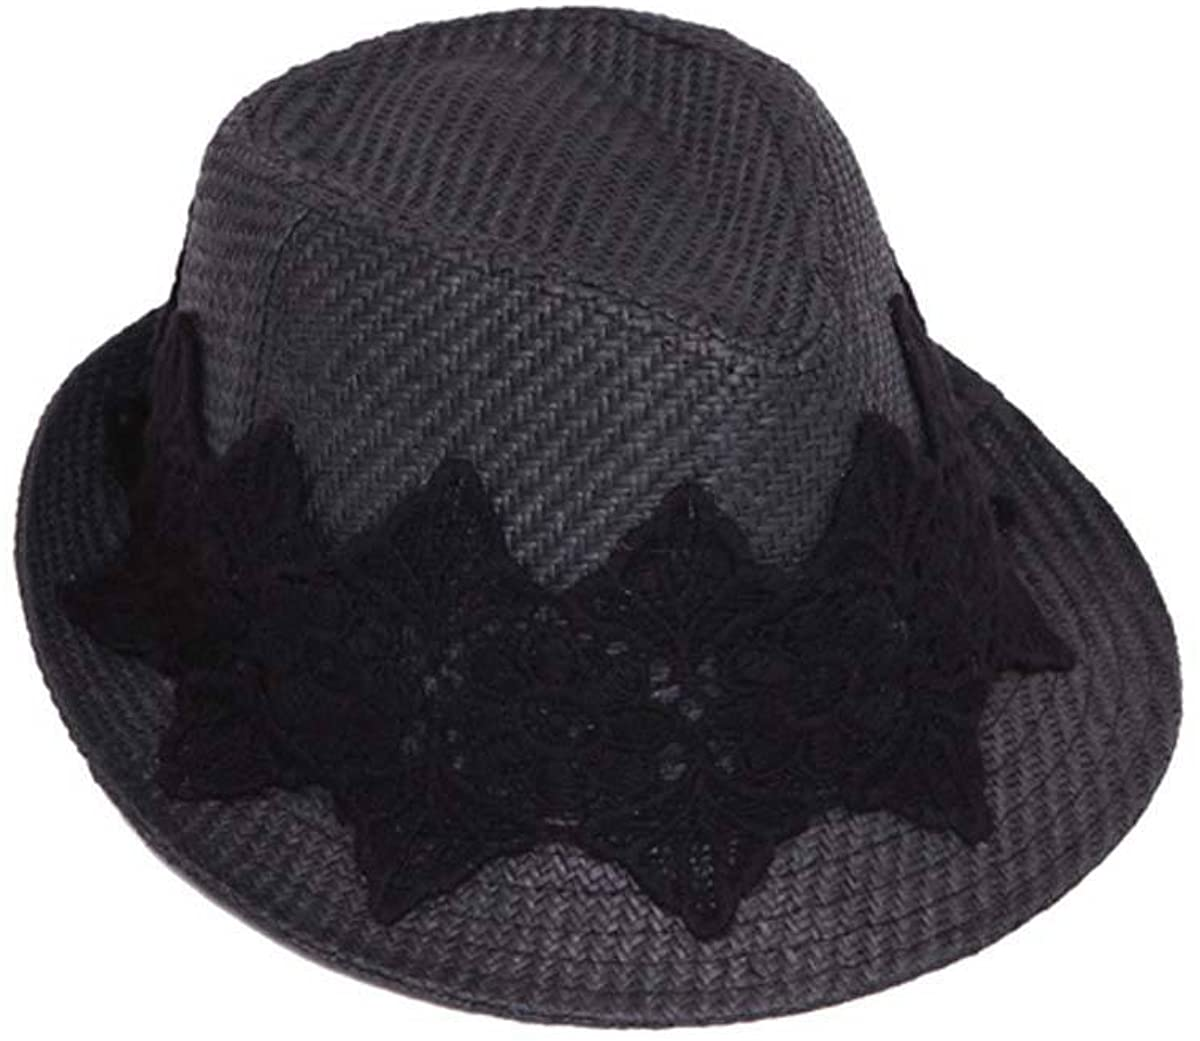 ChicHeadwear Womens Fedora Hat w/Floral Lace Band